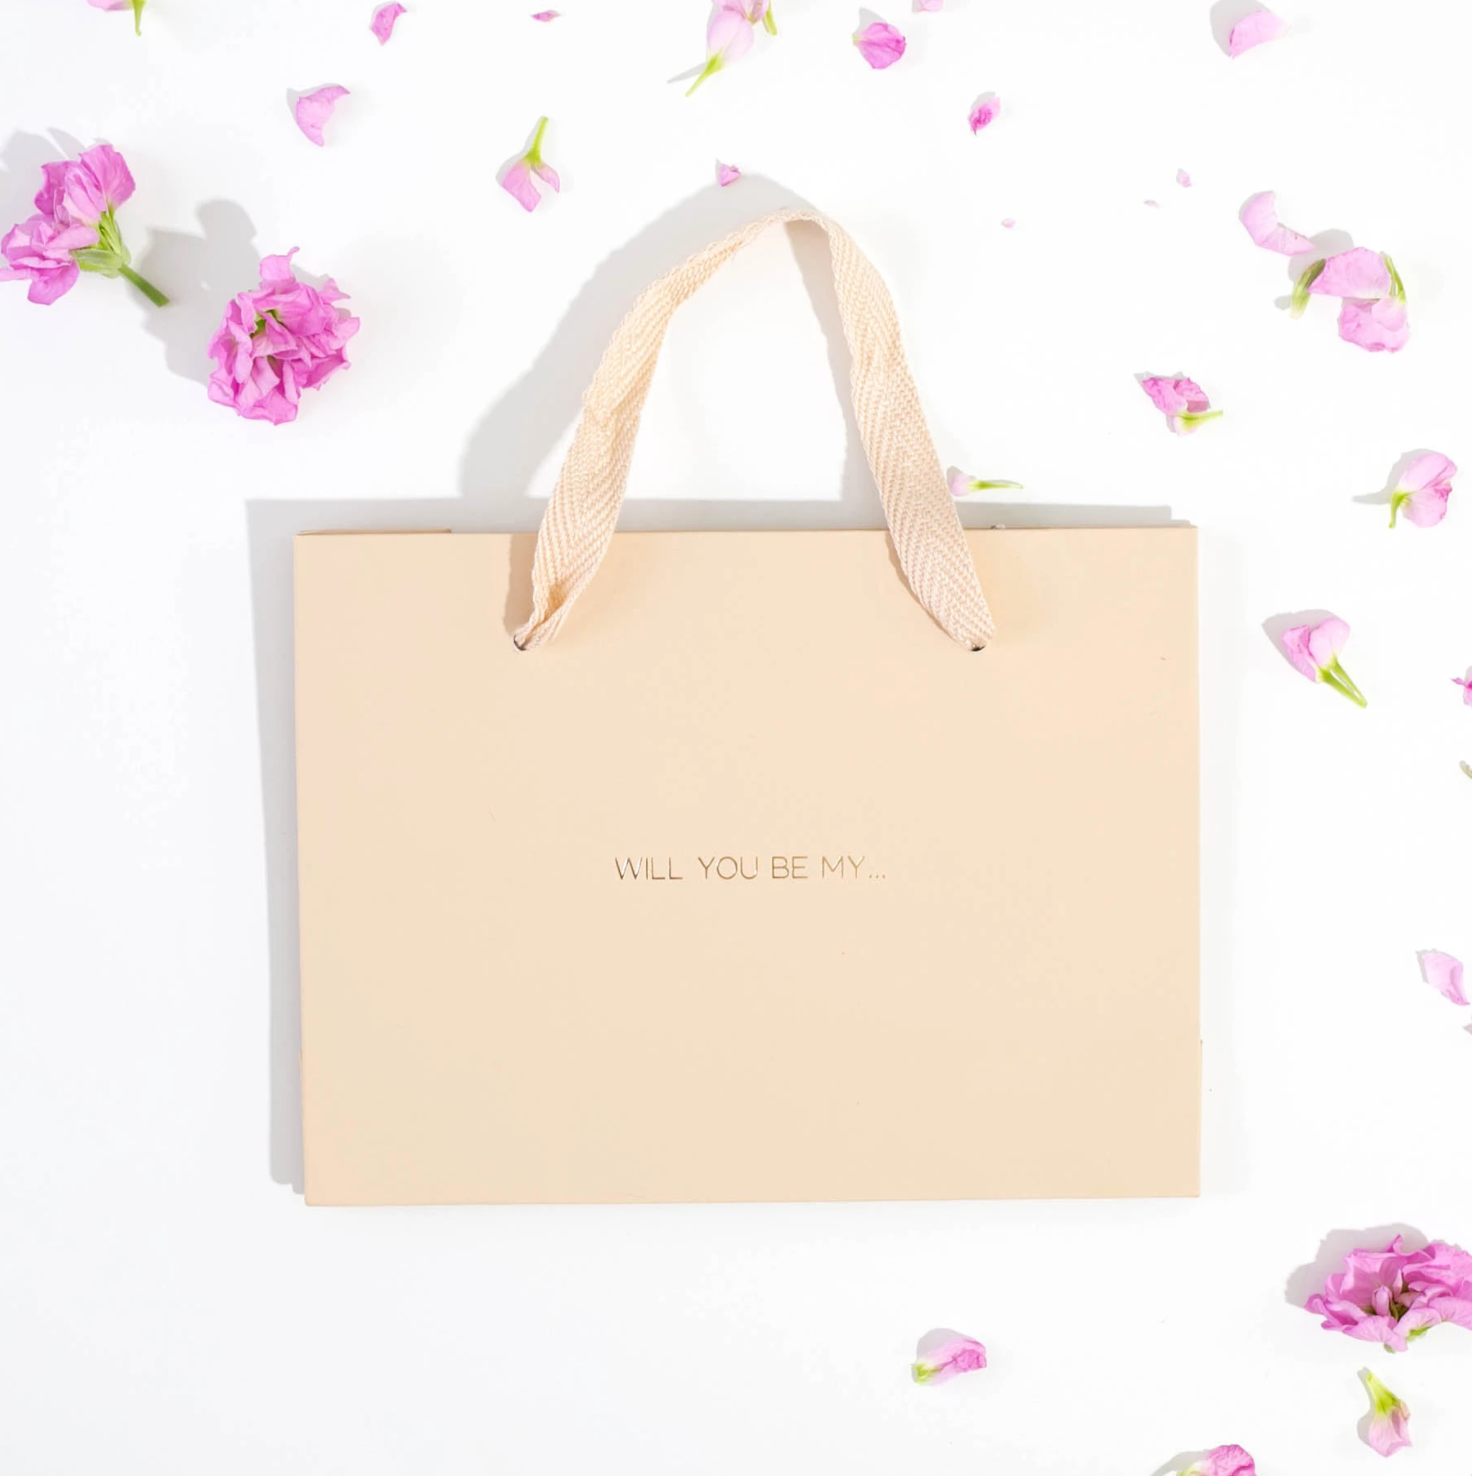 'Will You Be My' Luxury Gold Foil Gift Bag